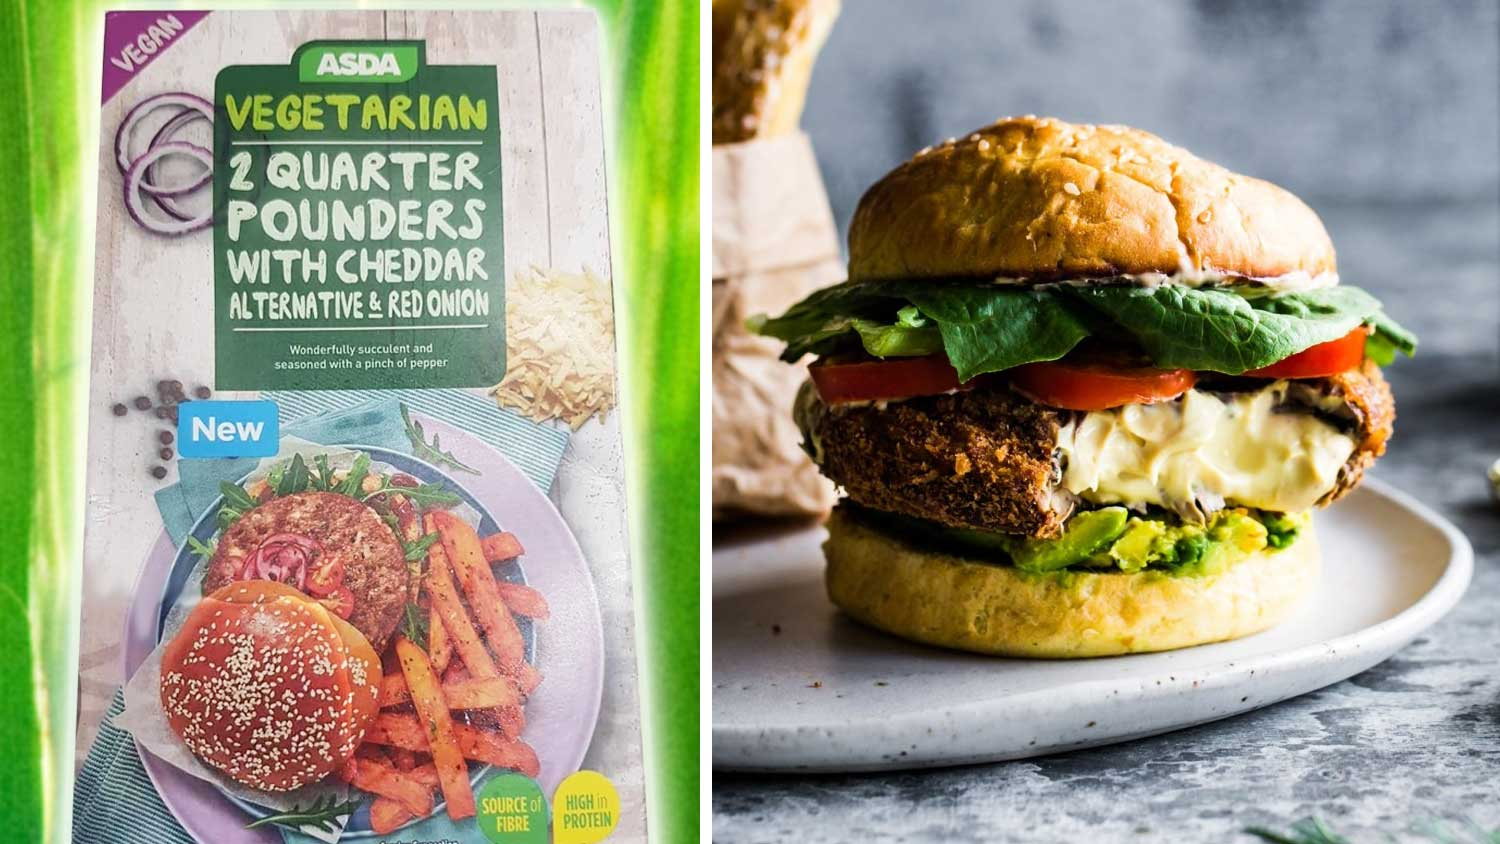 Asda Launches Vegan Burger Stuffed With Dairy-Free Cheese